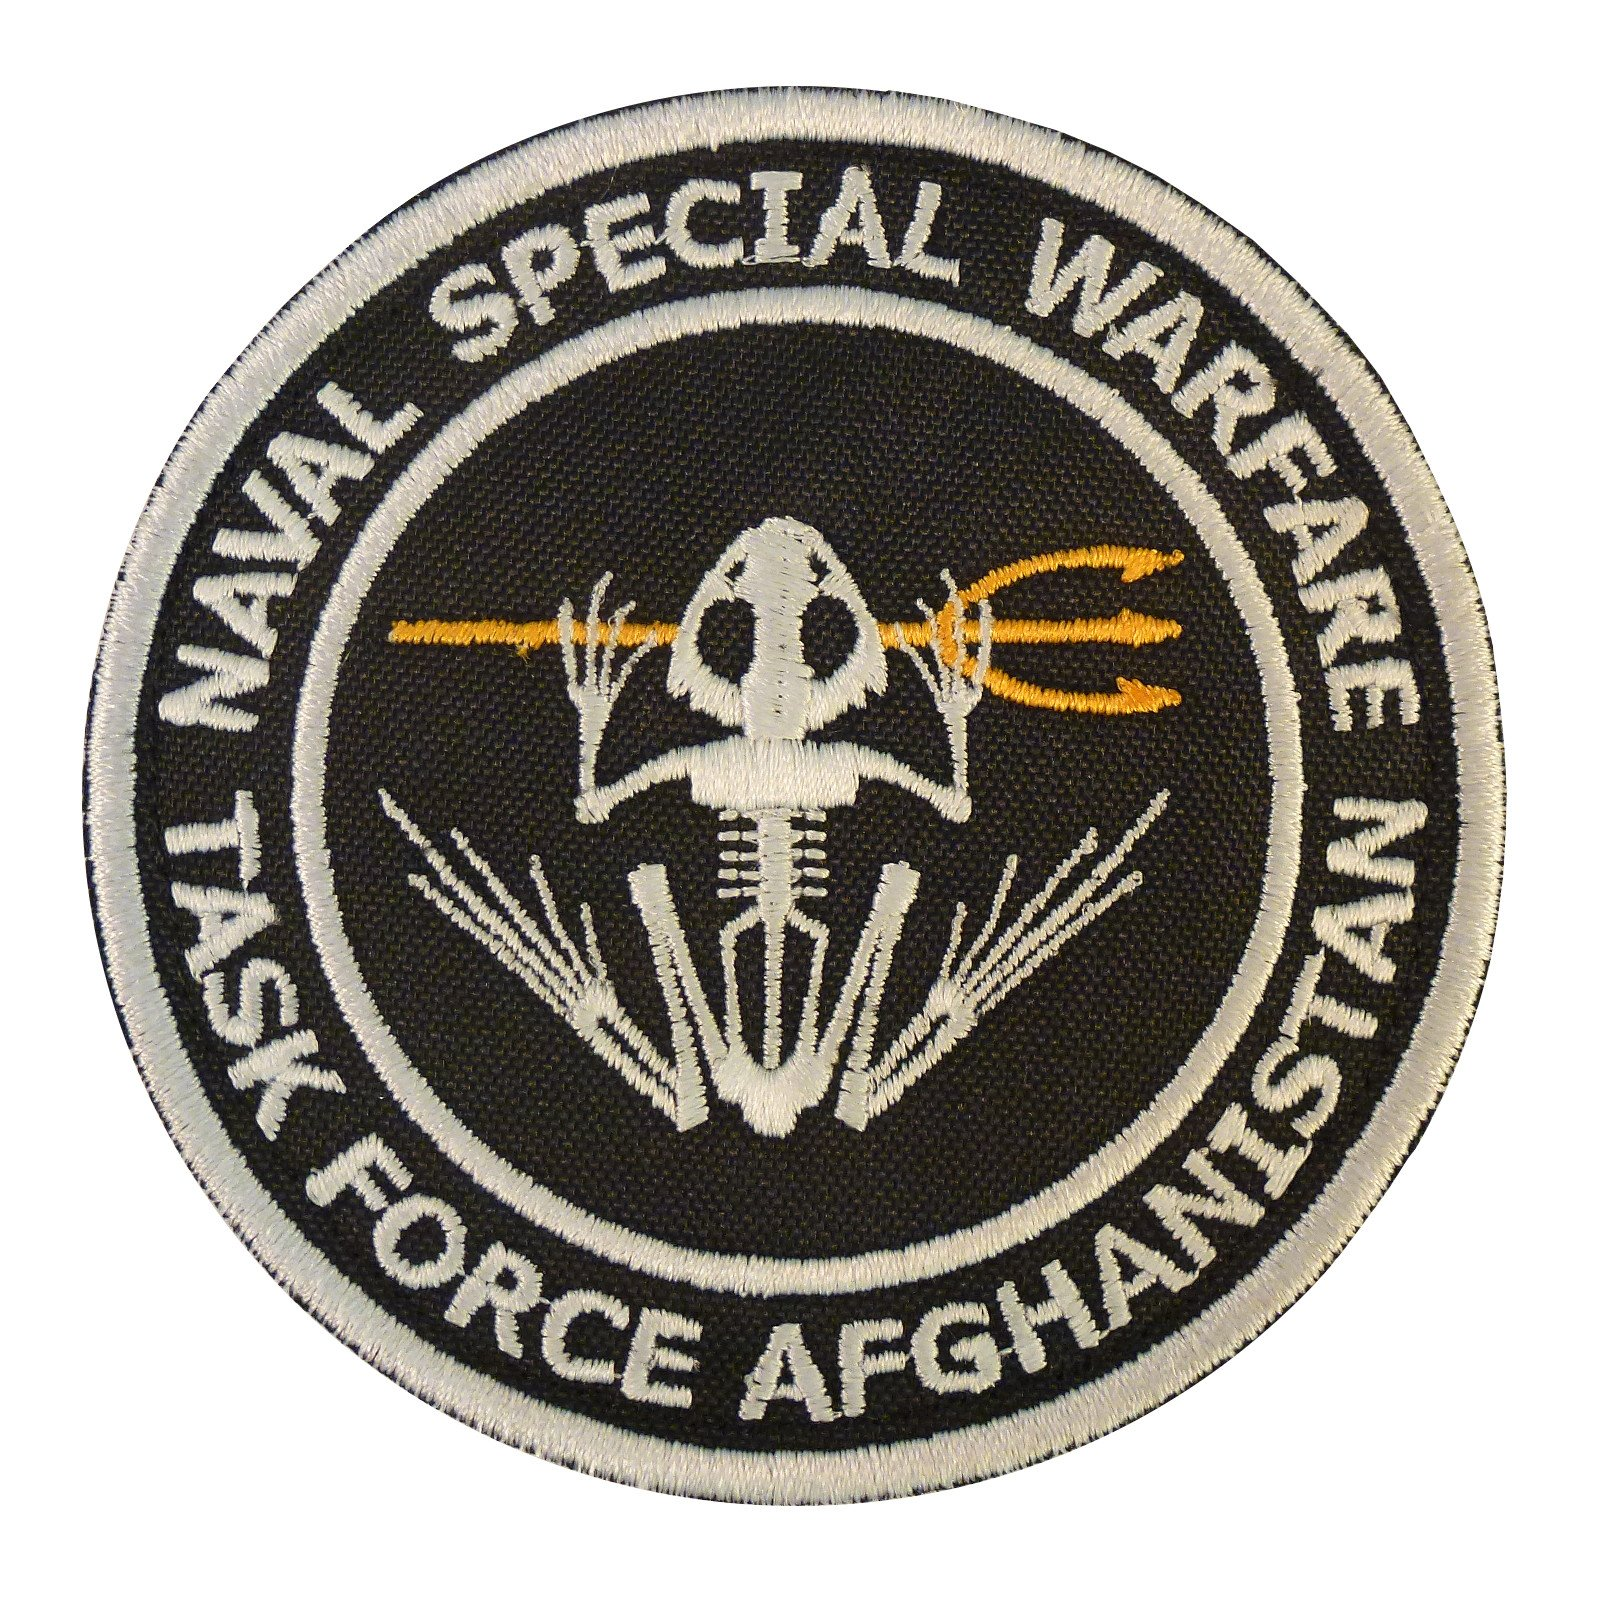 US Navy Seals NSW Task Force Afghanistan DEVGRU Frog Embroidered Touch Fastener Patch